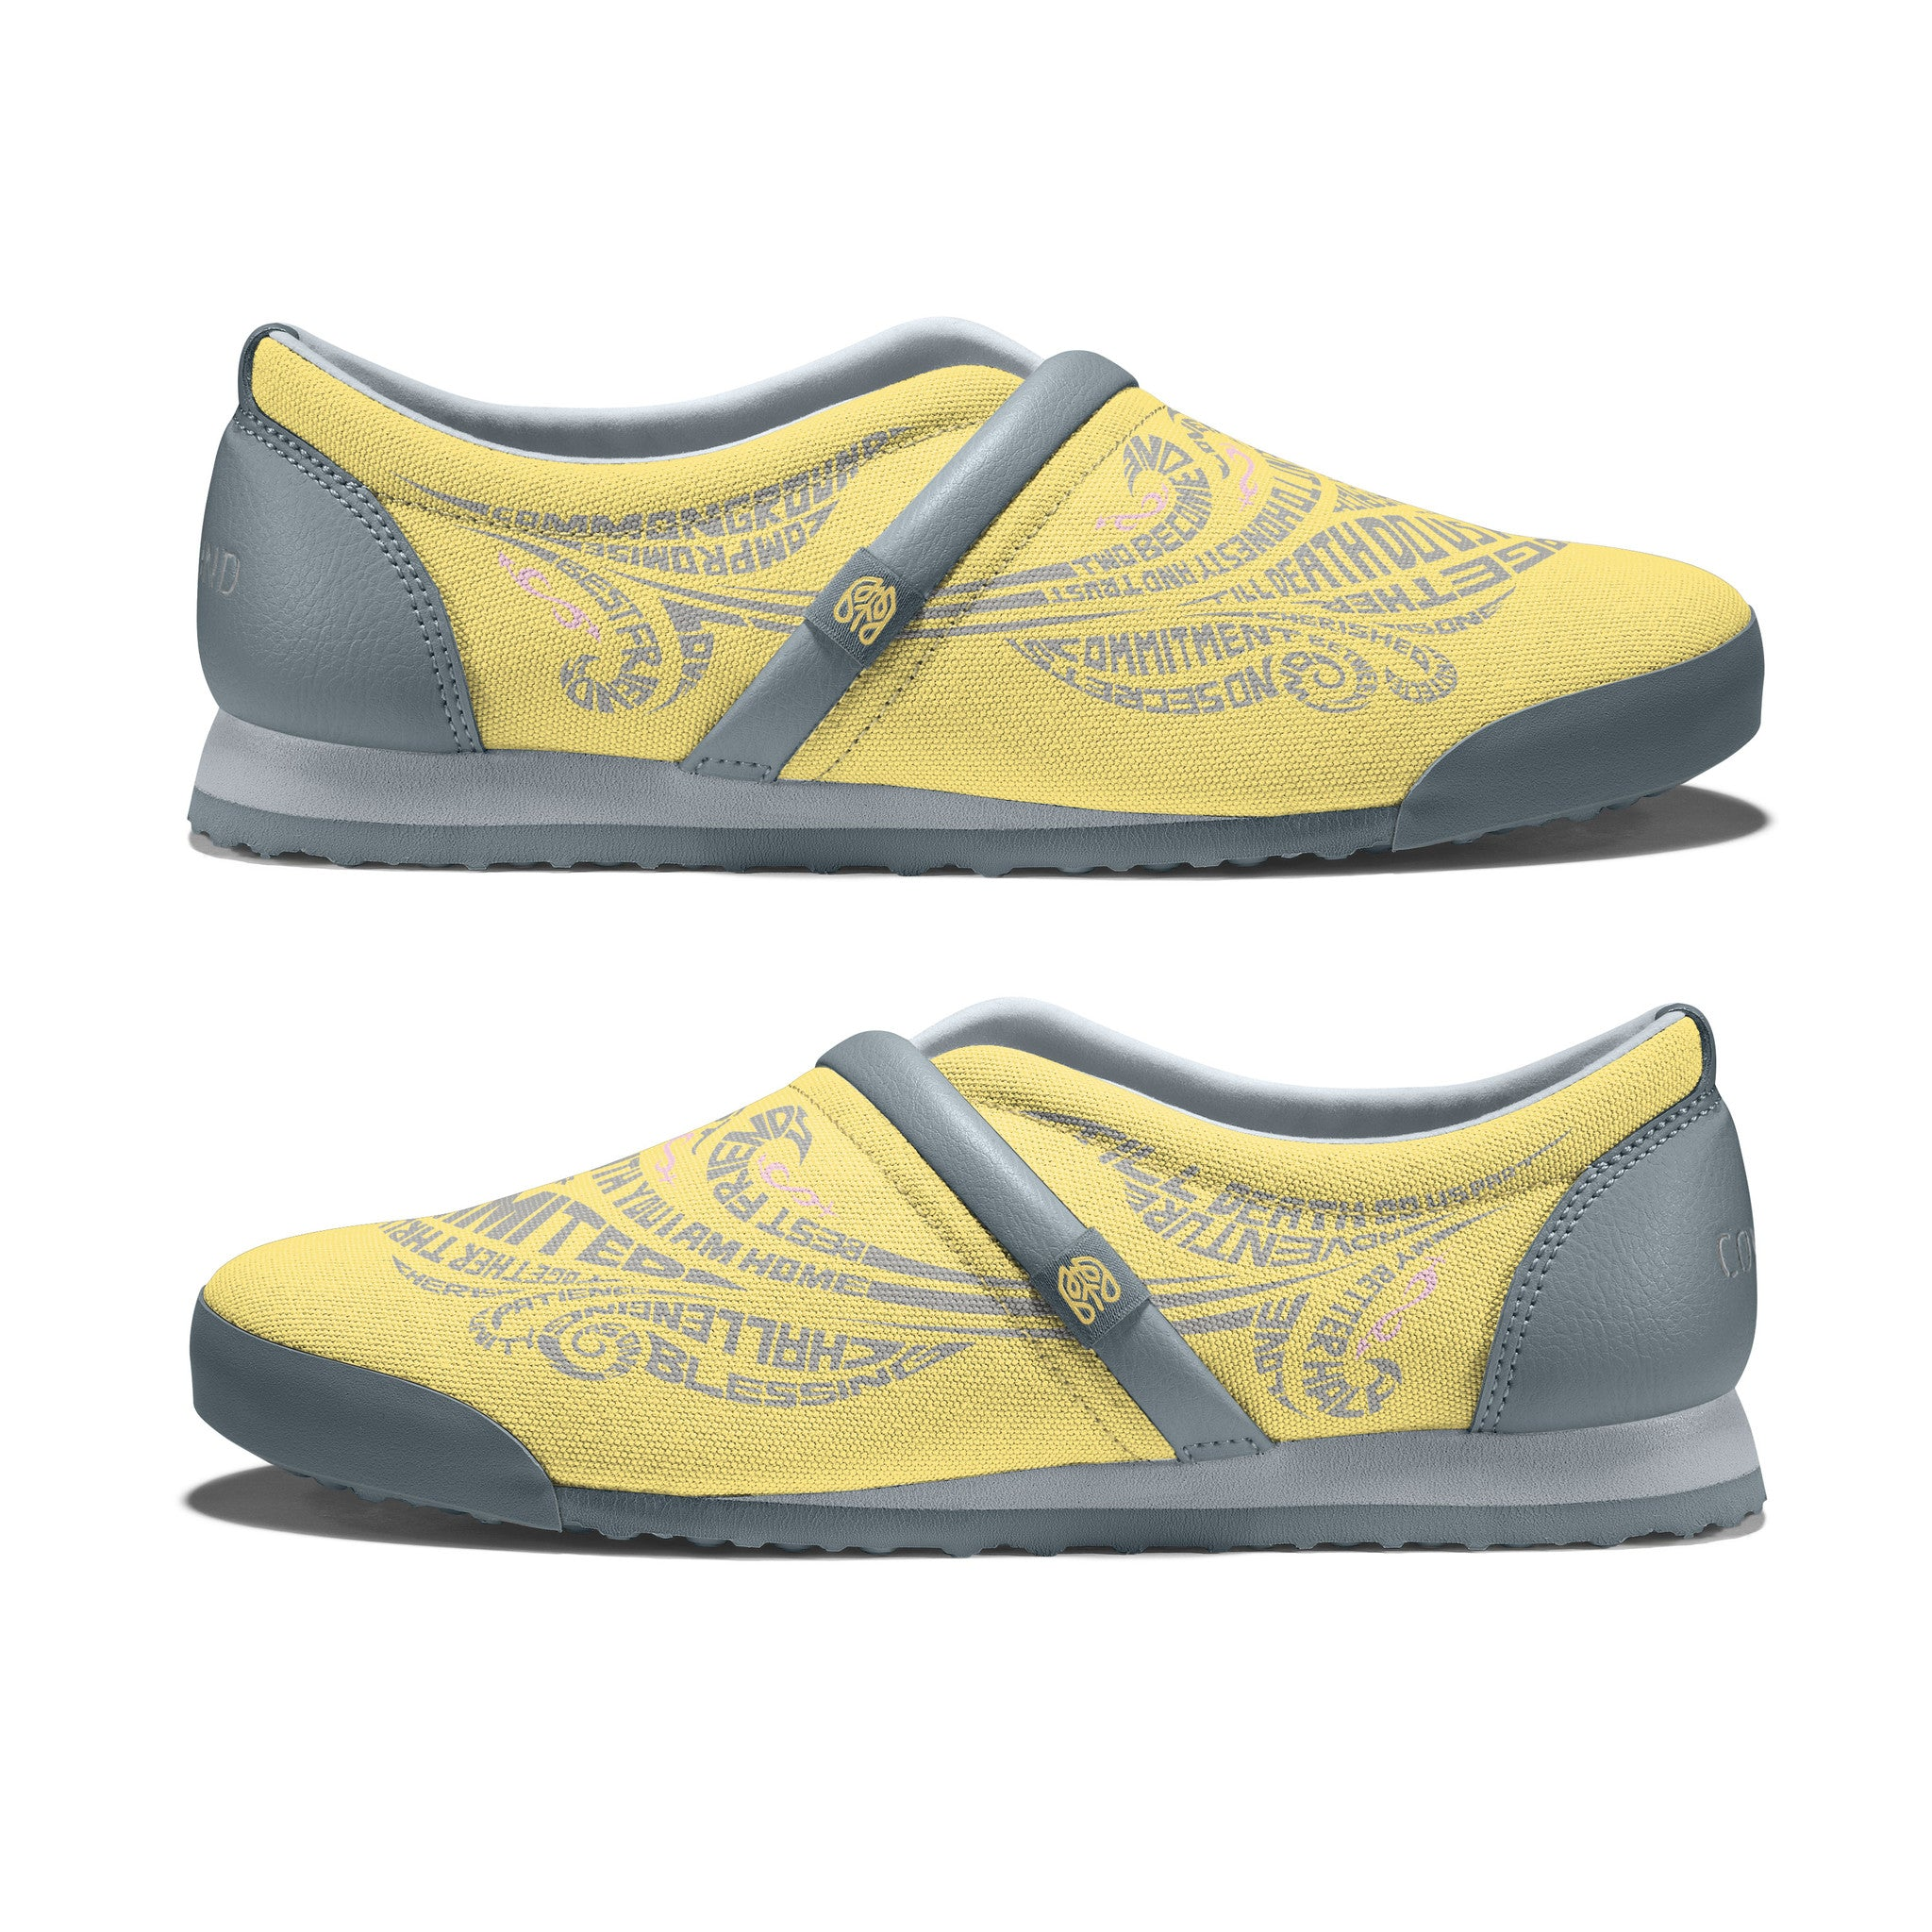 Goldfinch - Common Ground Footwear Shoes Side View